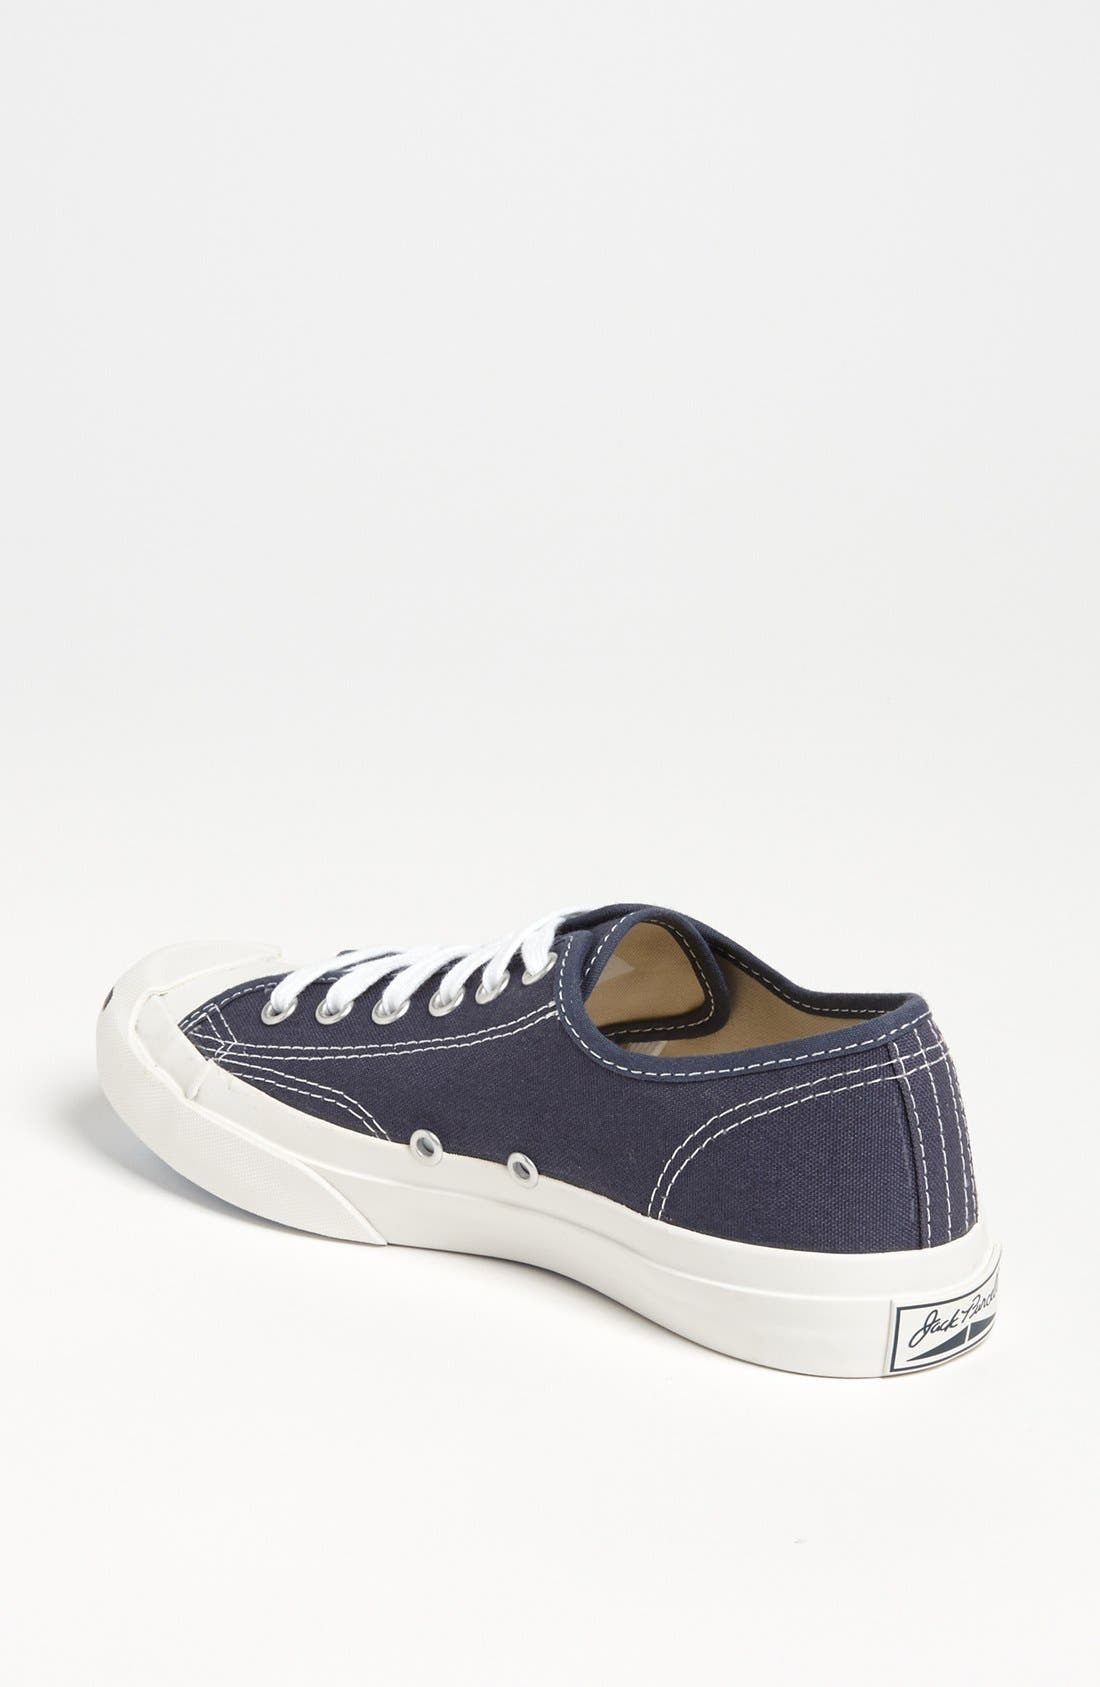 'Jack Purcell' Sneaker,                             Alternate thumbnail 10, color,